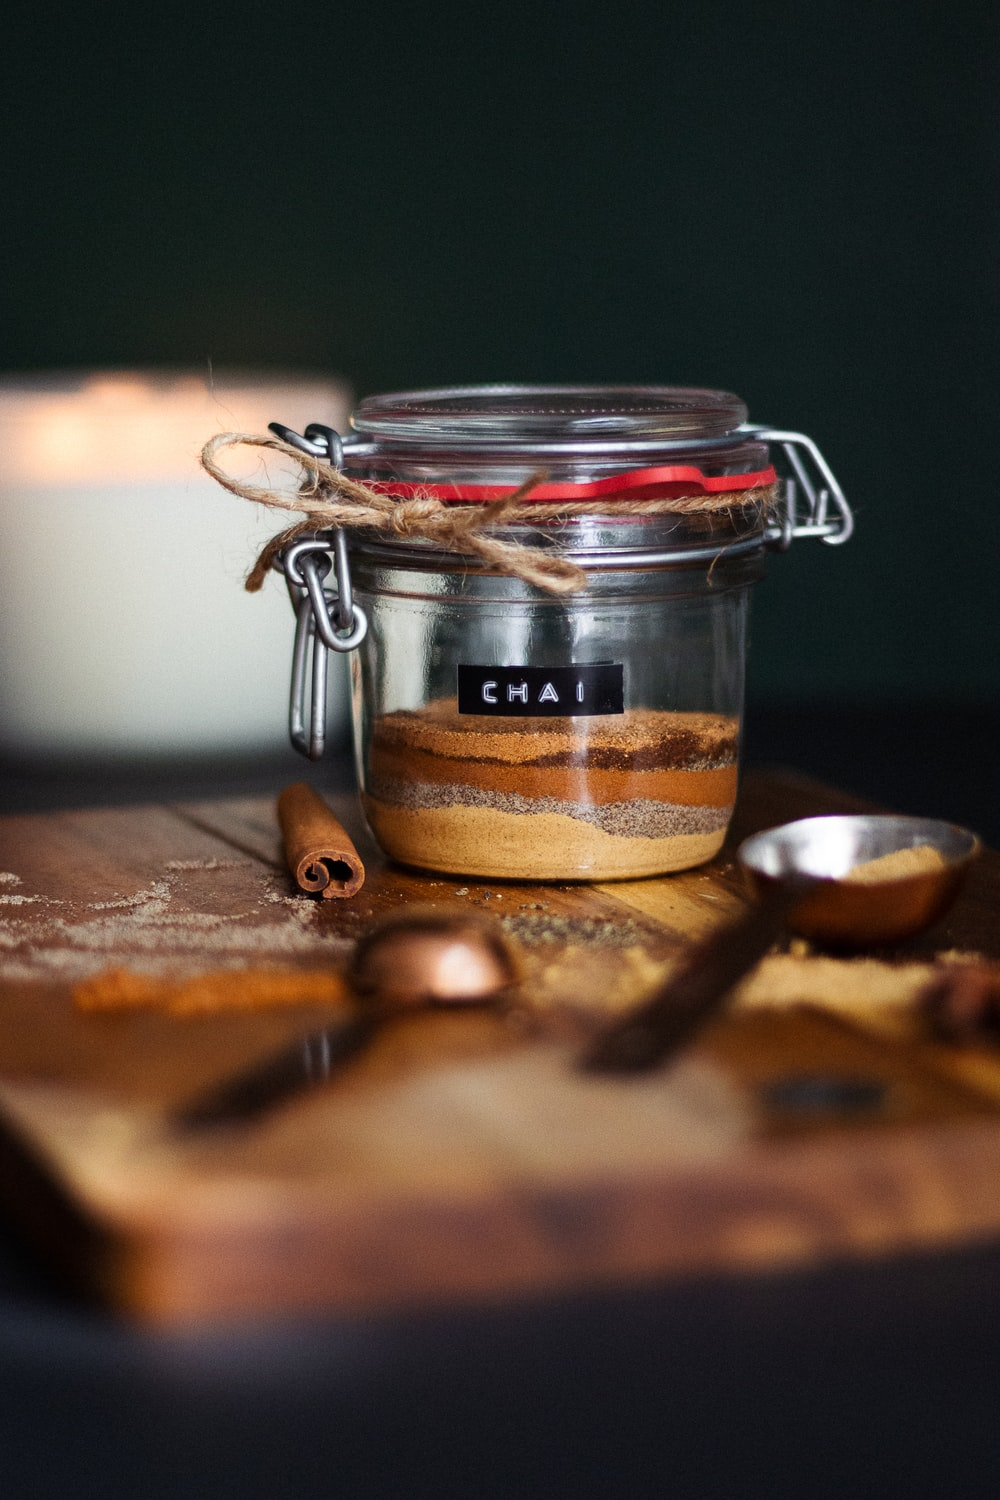 clear glass jar with brown powder on brown wooden table